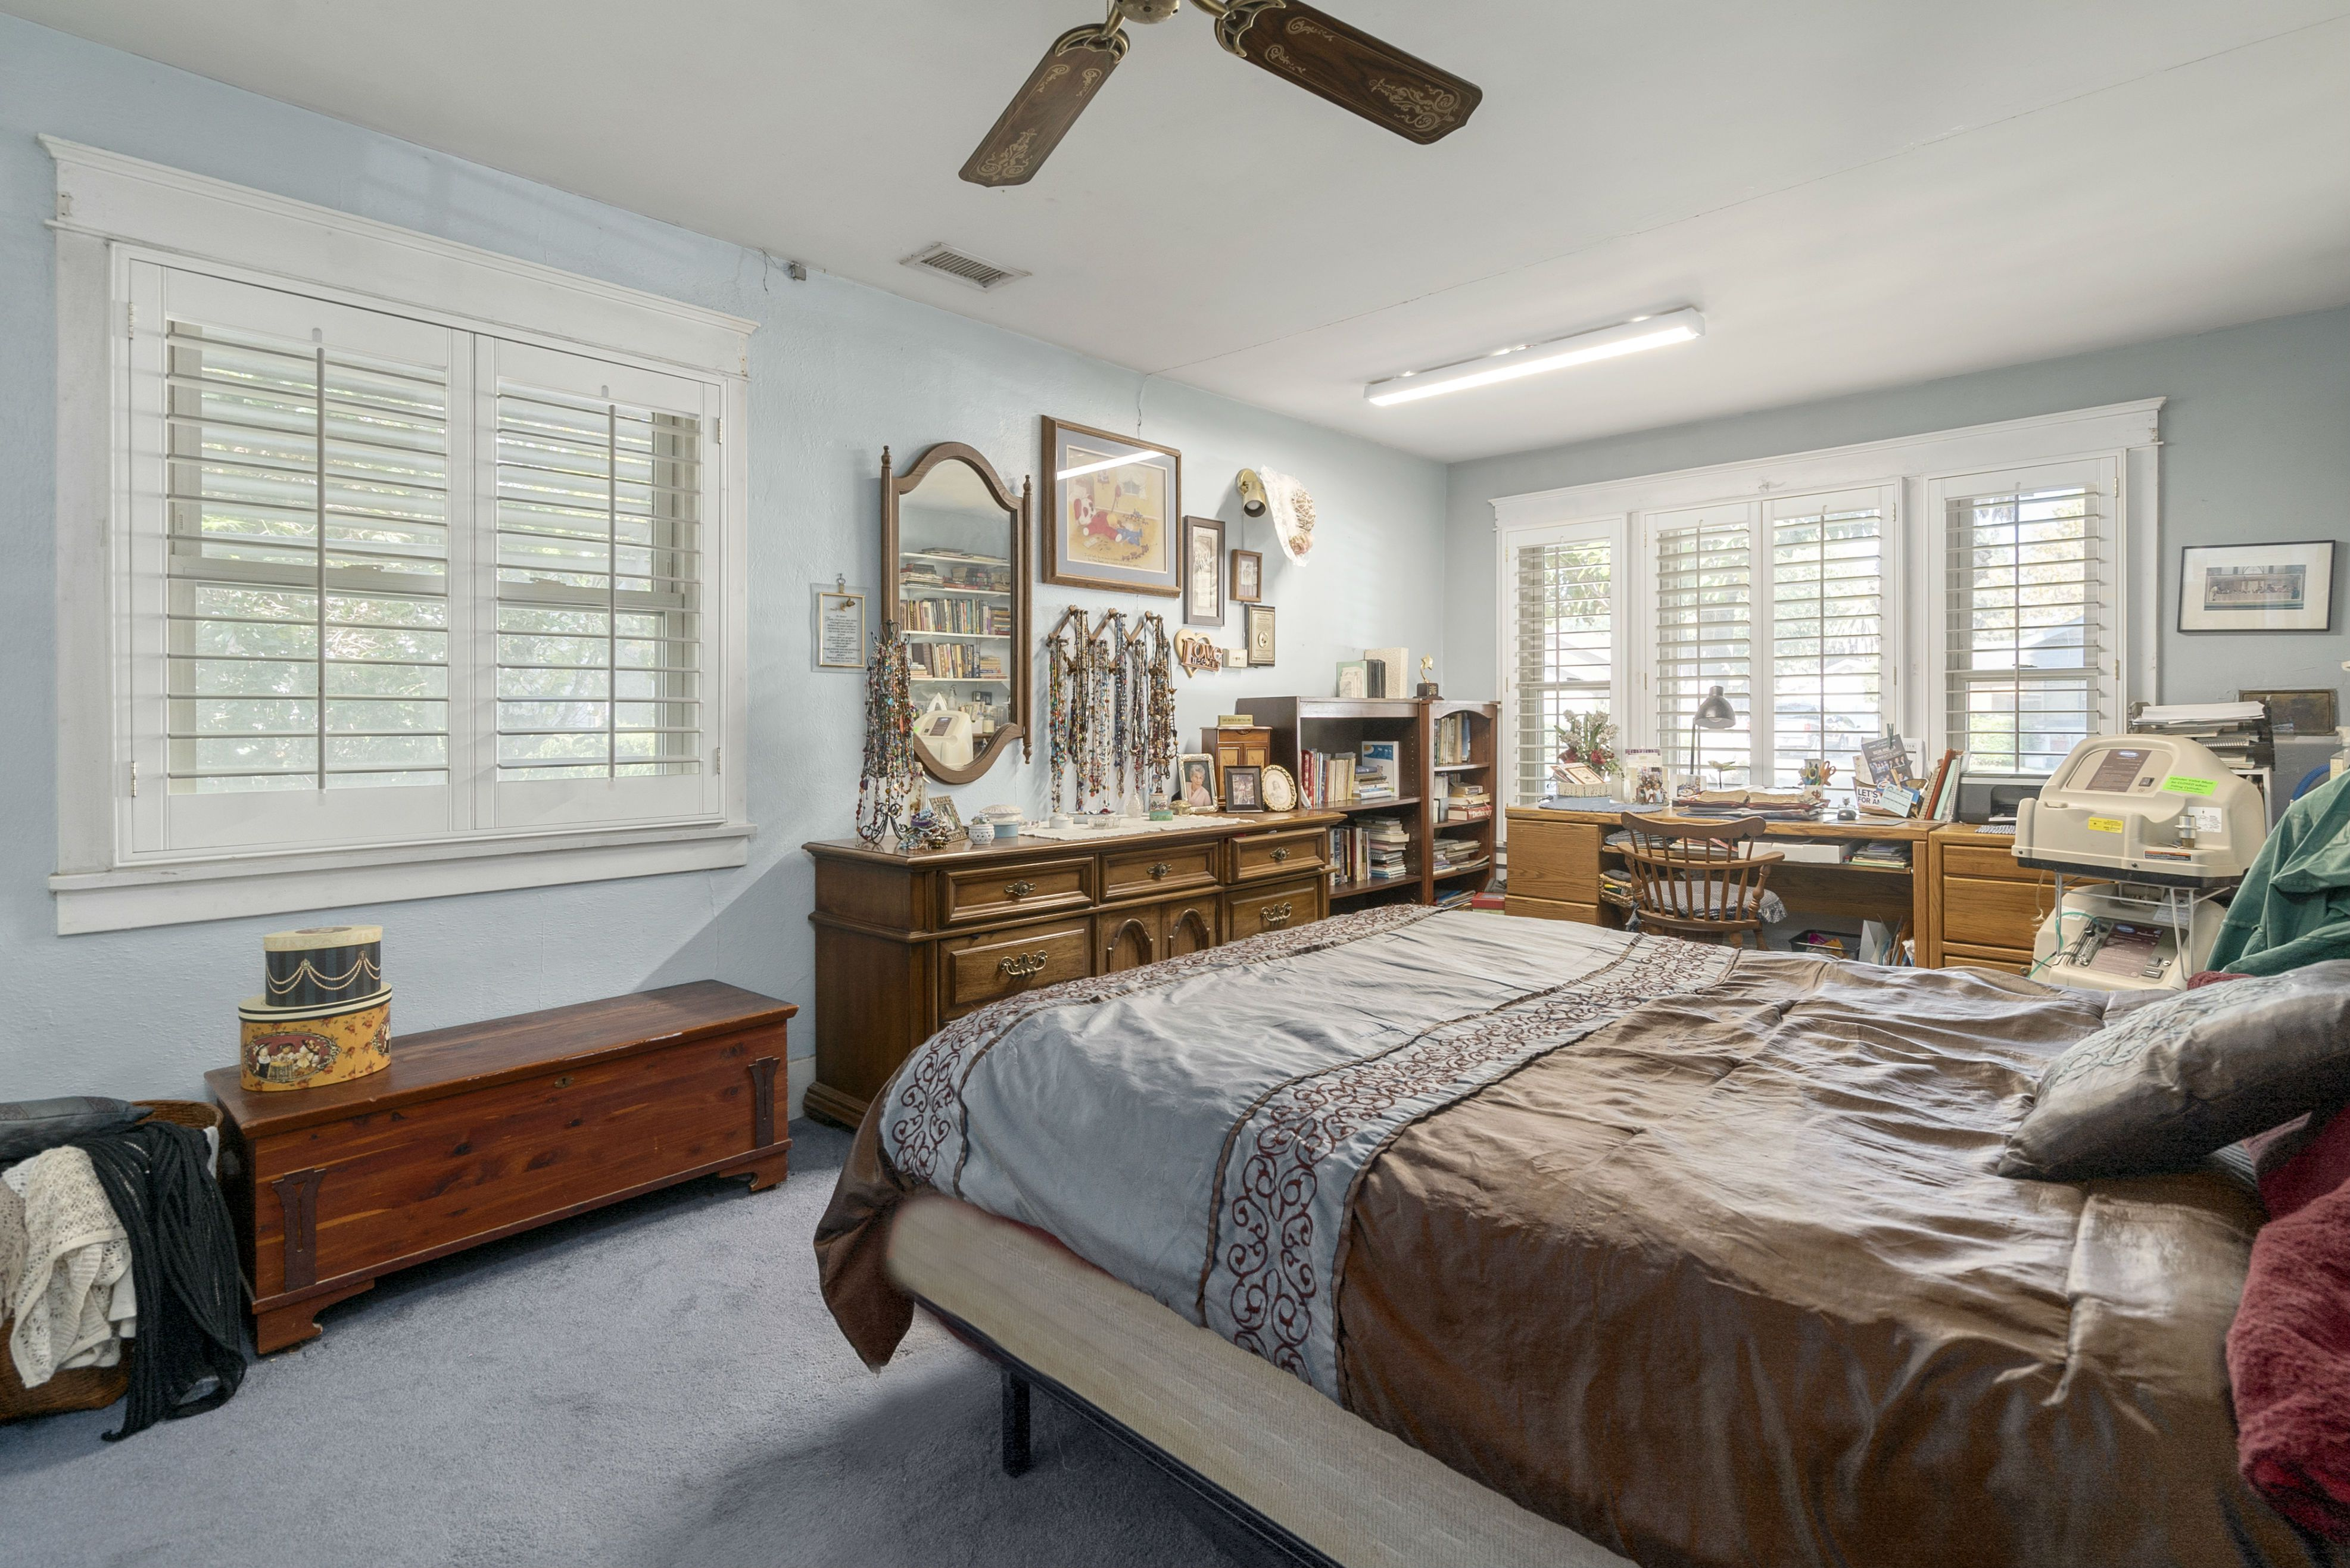 Front bedroom (largest of all 3) with ceiling fan, extra space toward the front window due to the permitted enclosure of the original front porch back in the 1970s.